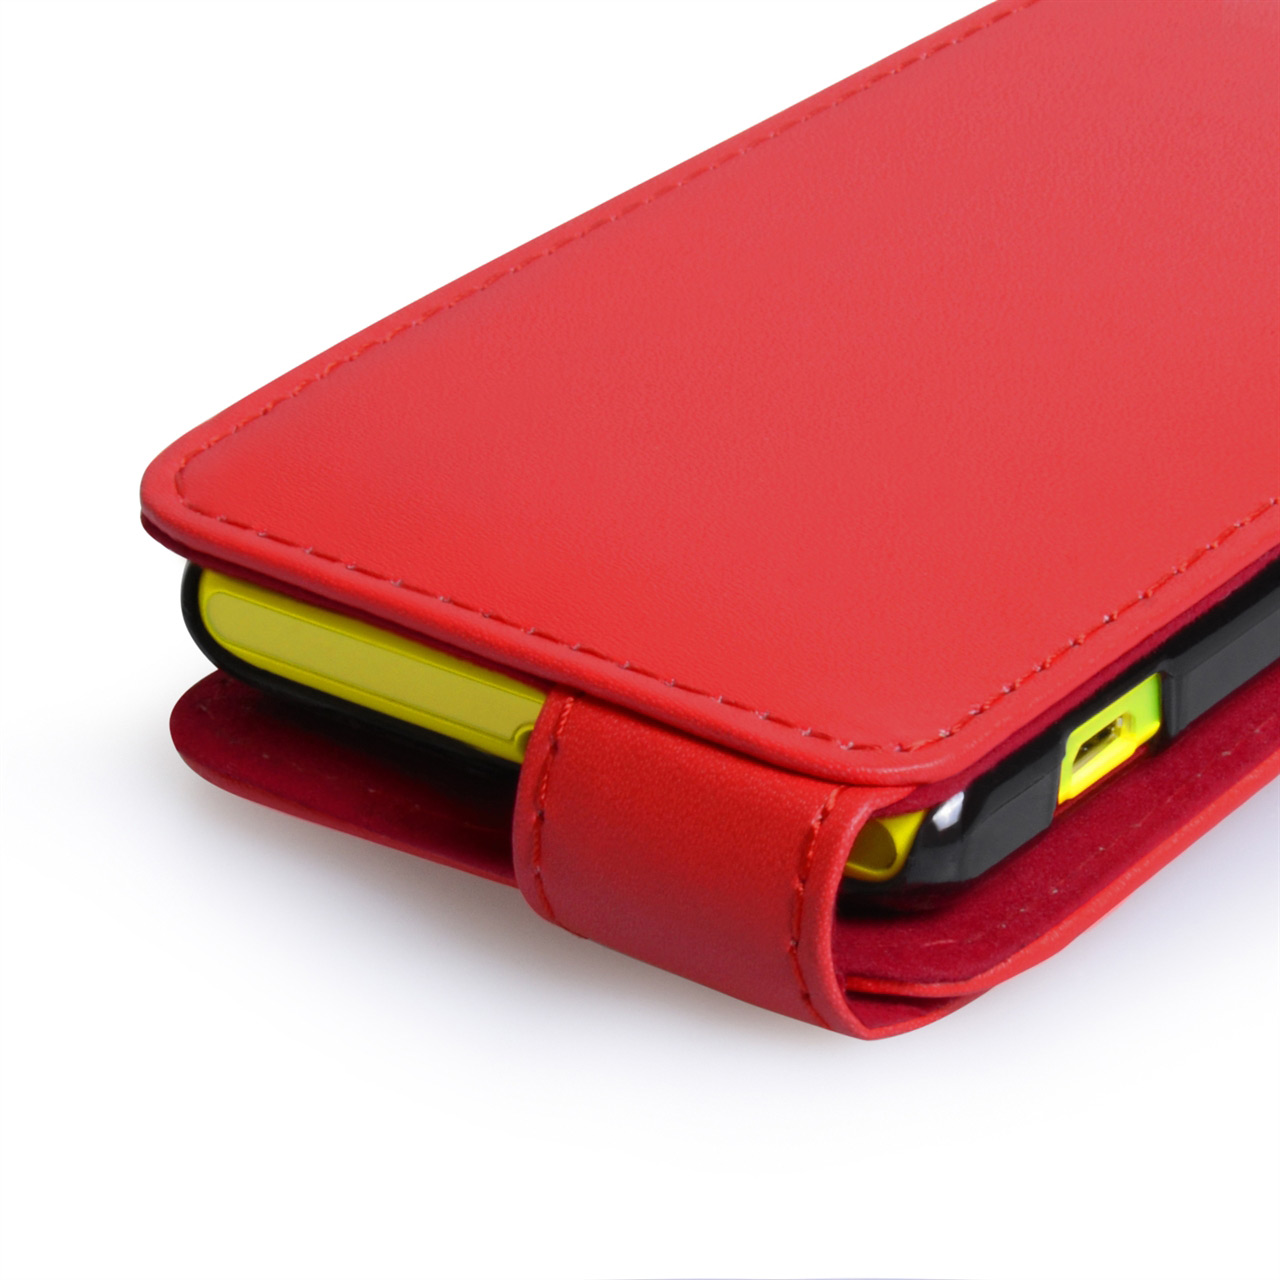 YouSave Accessories Sony Xperia M Leather Effect Flip Case - Red